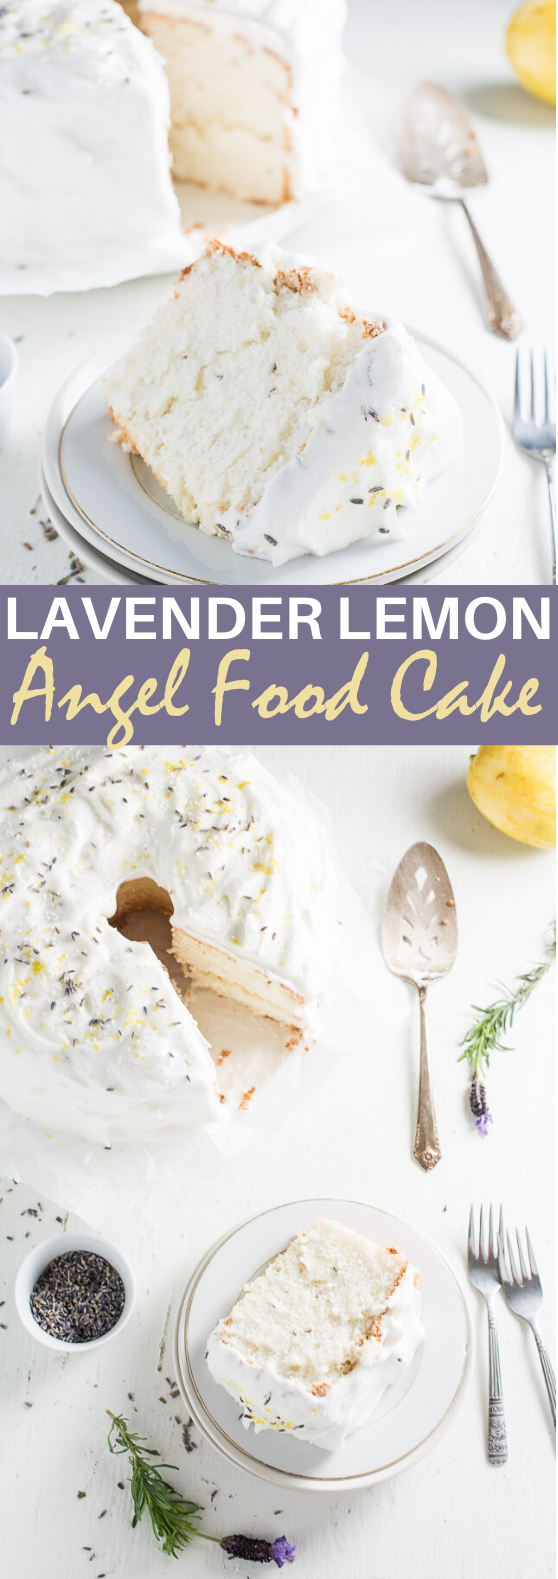 Lavender Lemon Angel Food Cake #cake #recipes #baking #desserts #frosting